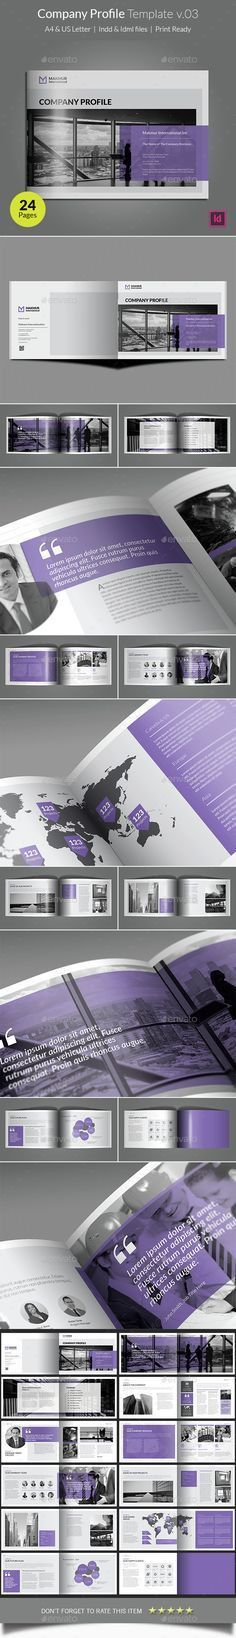 Free Download - Company Profile Template - Brochure - Magazine ...